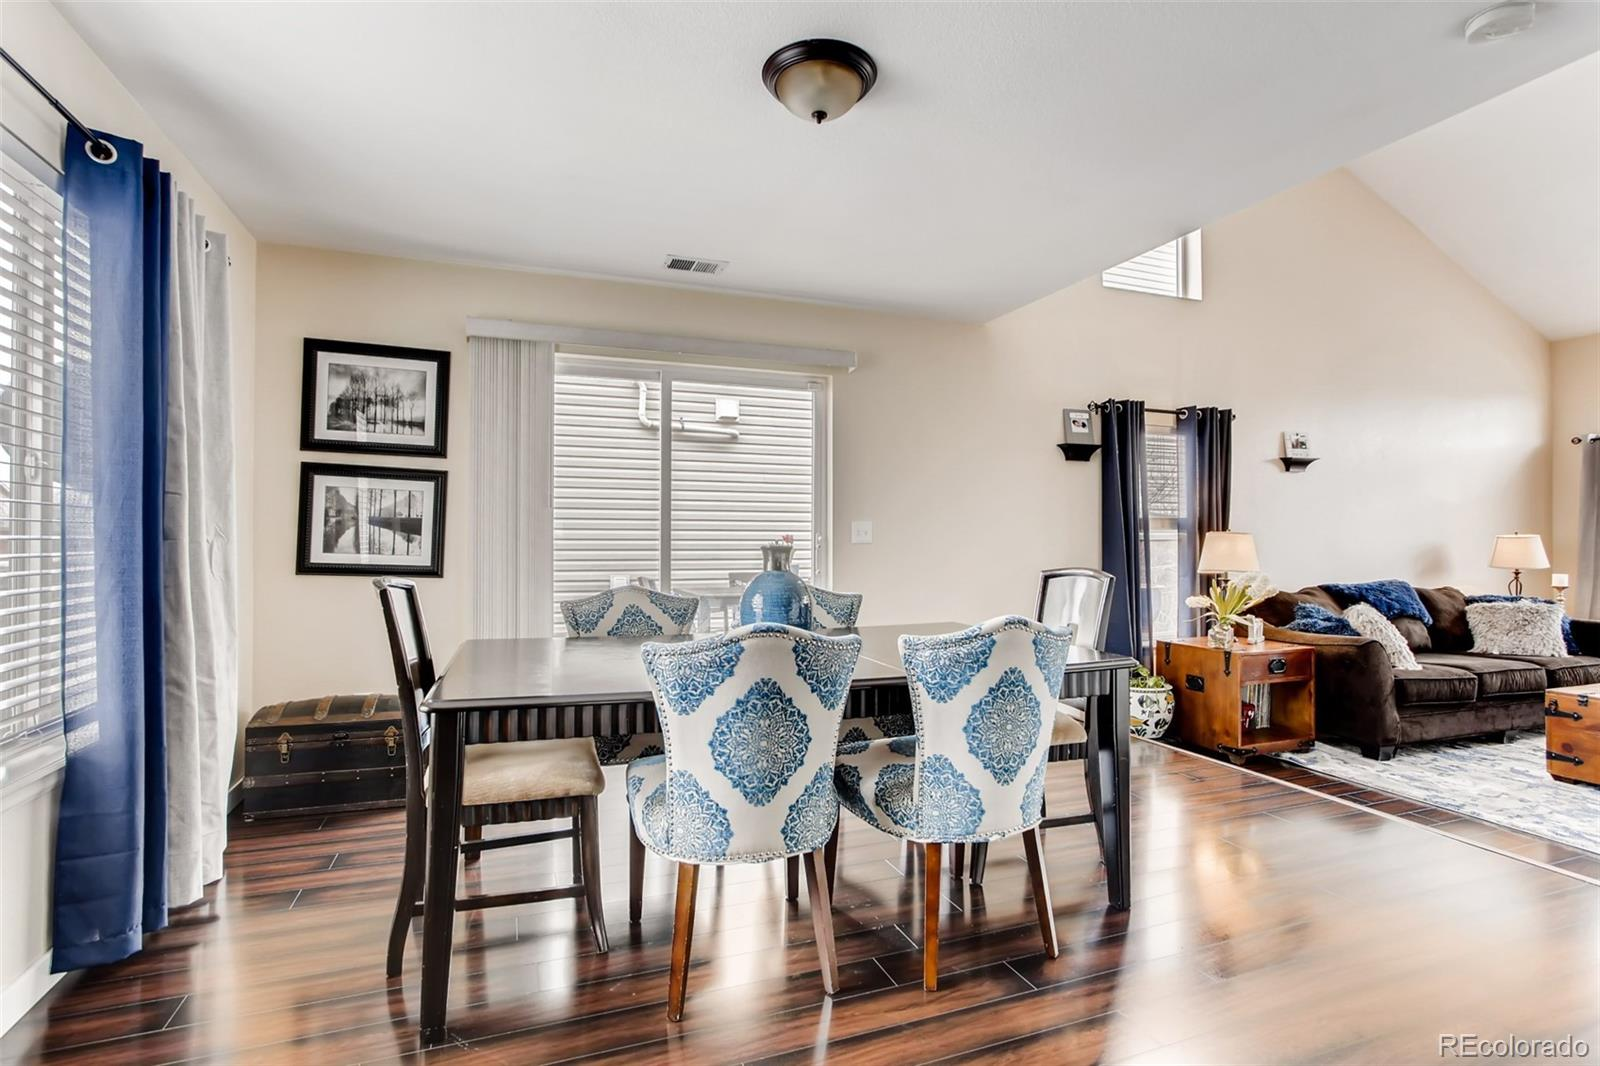 MLS# 3131128 - 7 - 20000 Mitchell Place #64, Denver, CO 80249